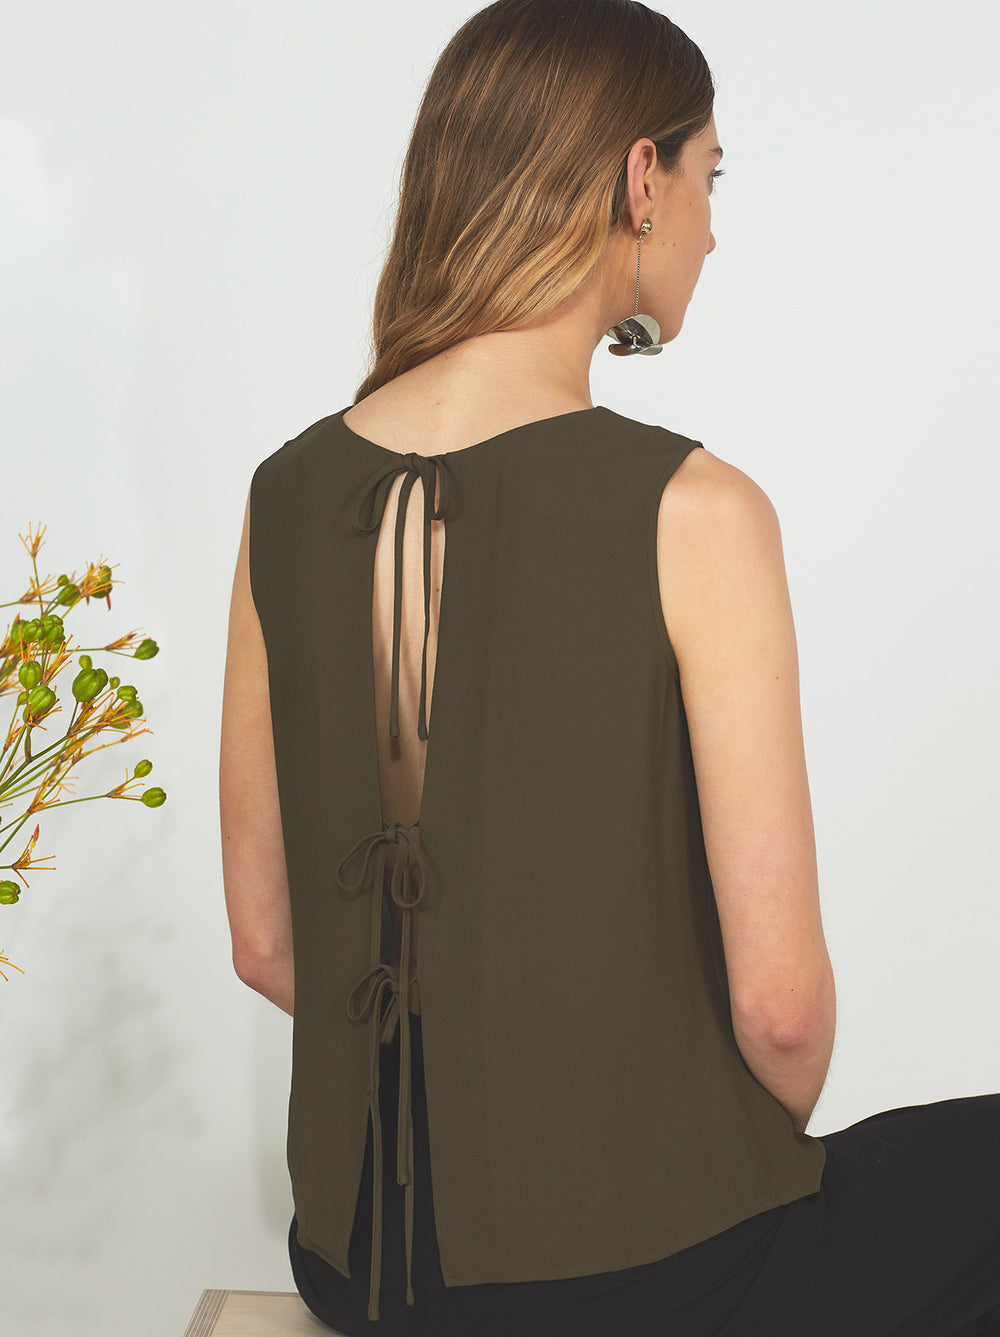 Leanne Khaki Open Back Blouse by KITRI Studio